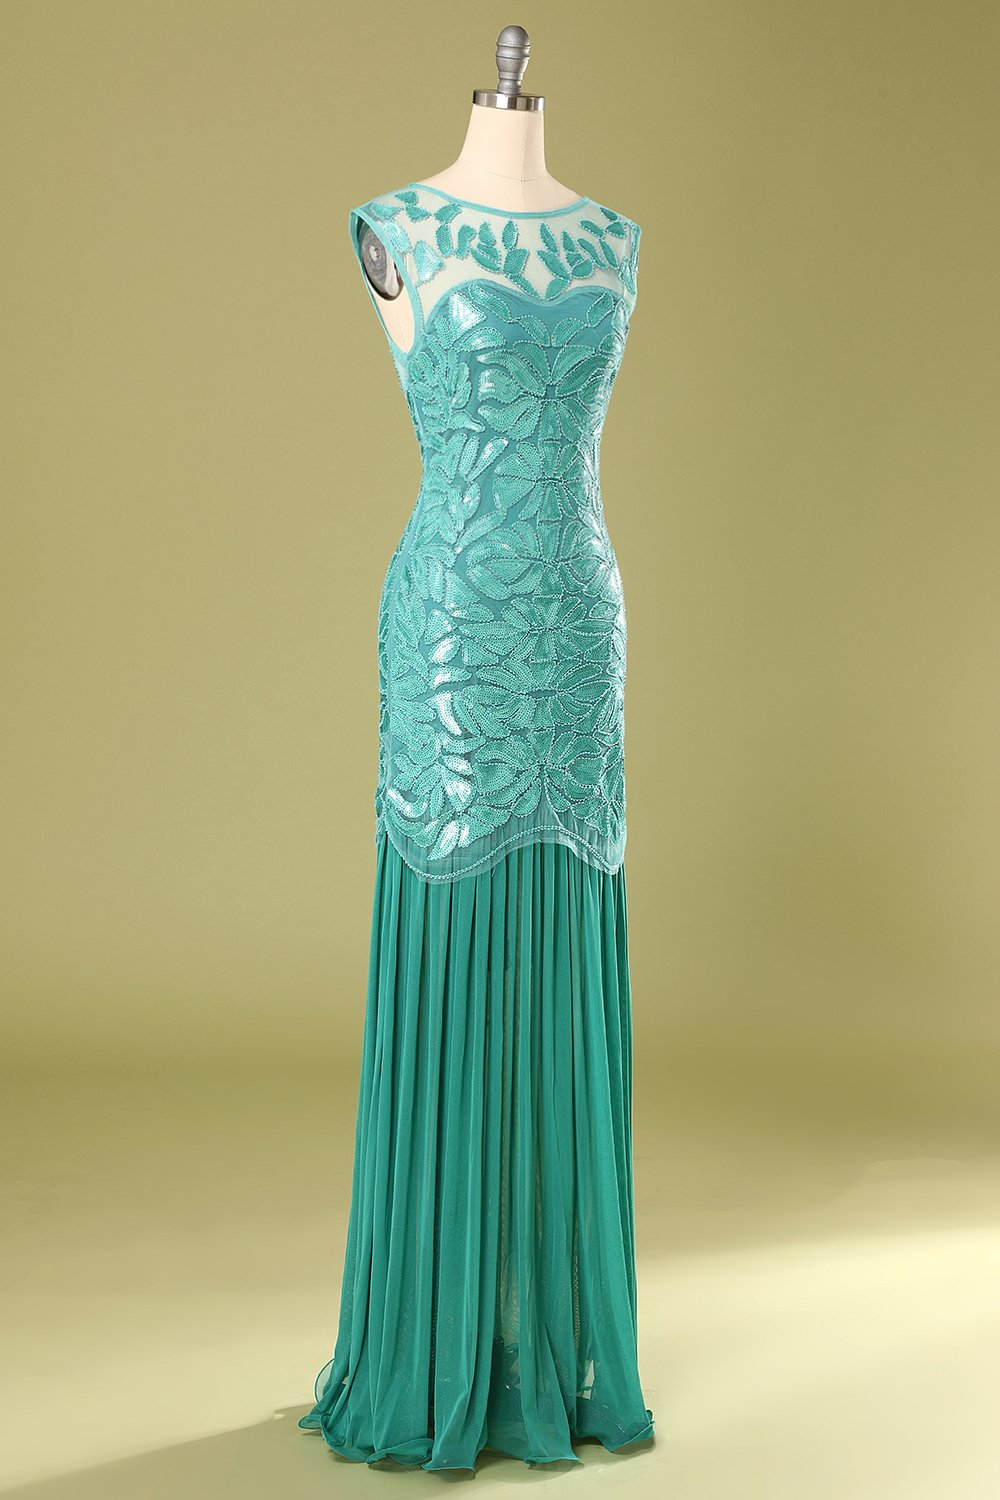 Blue Mermaid 1920s Flapper Dress